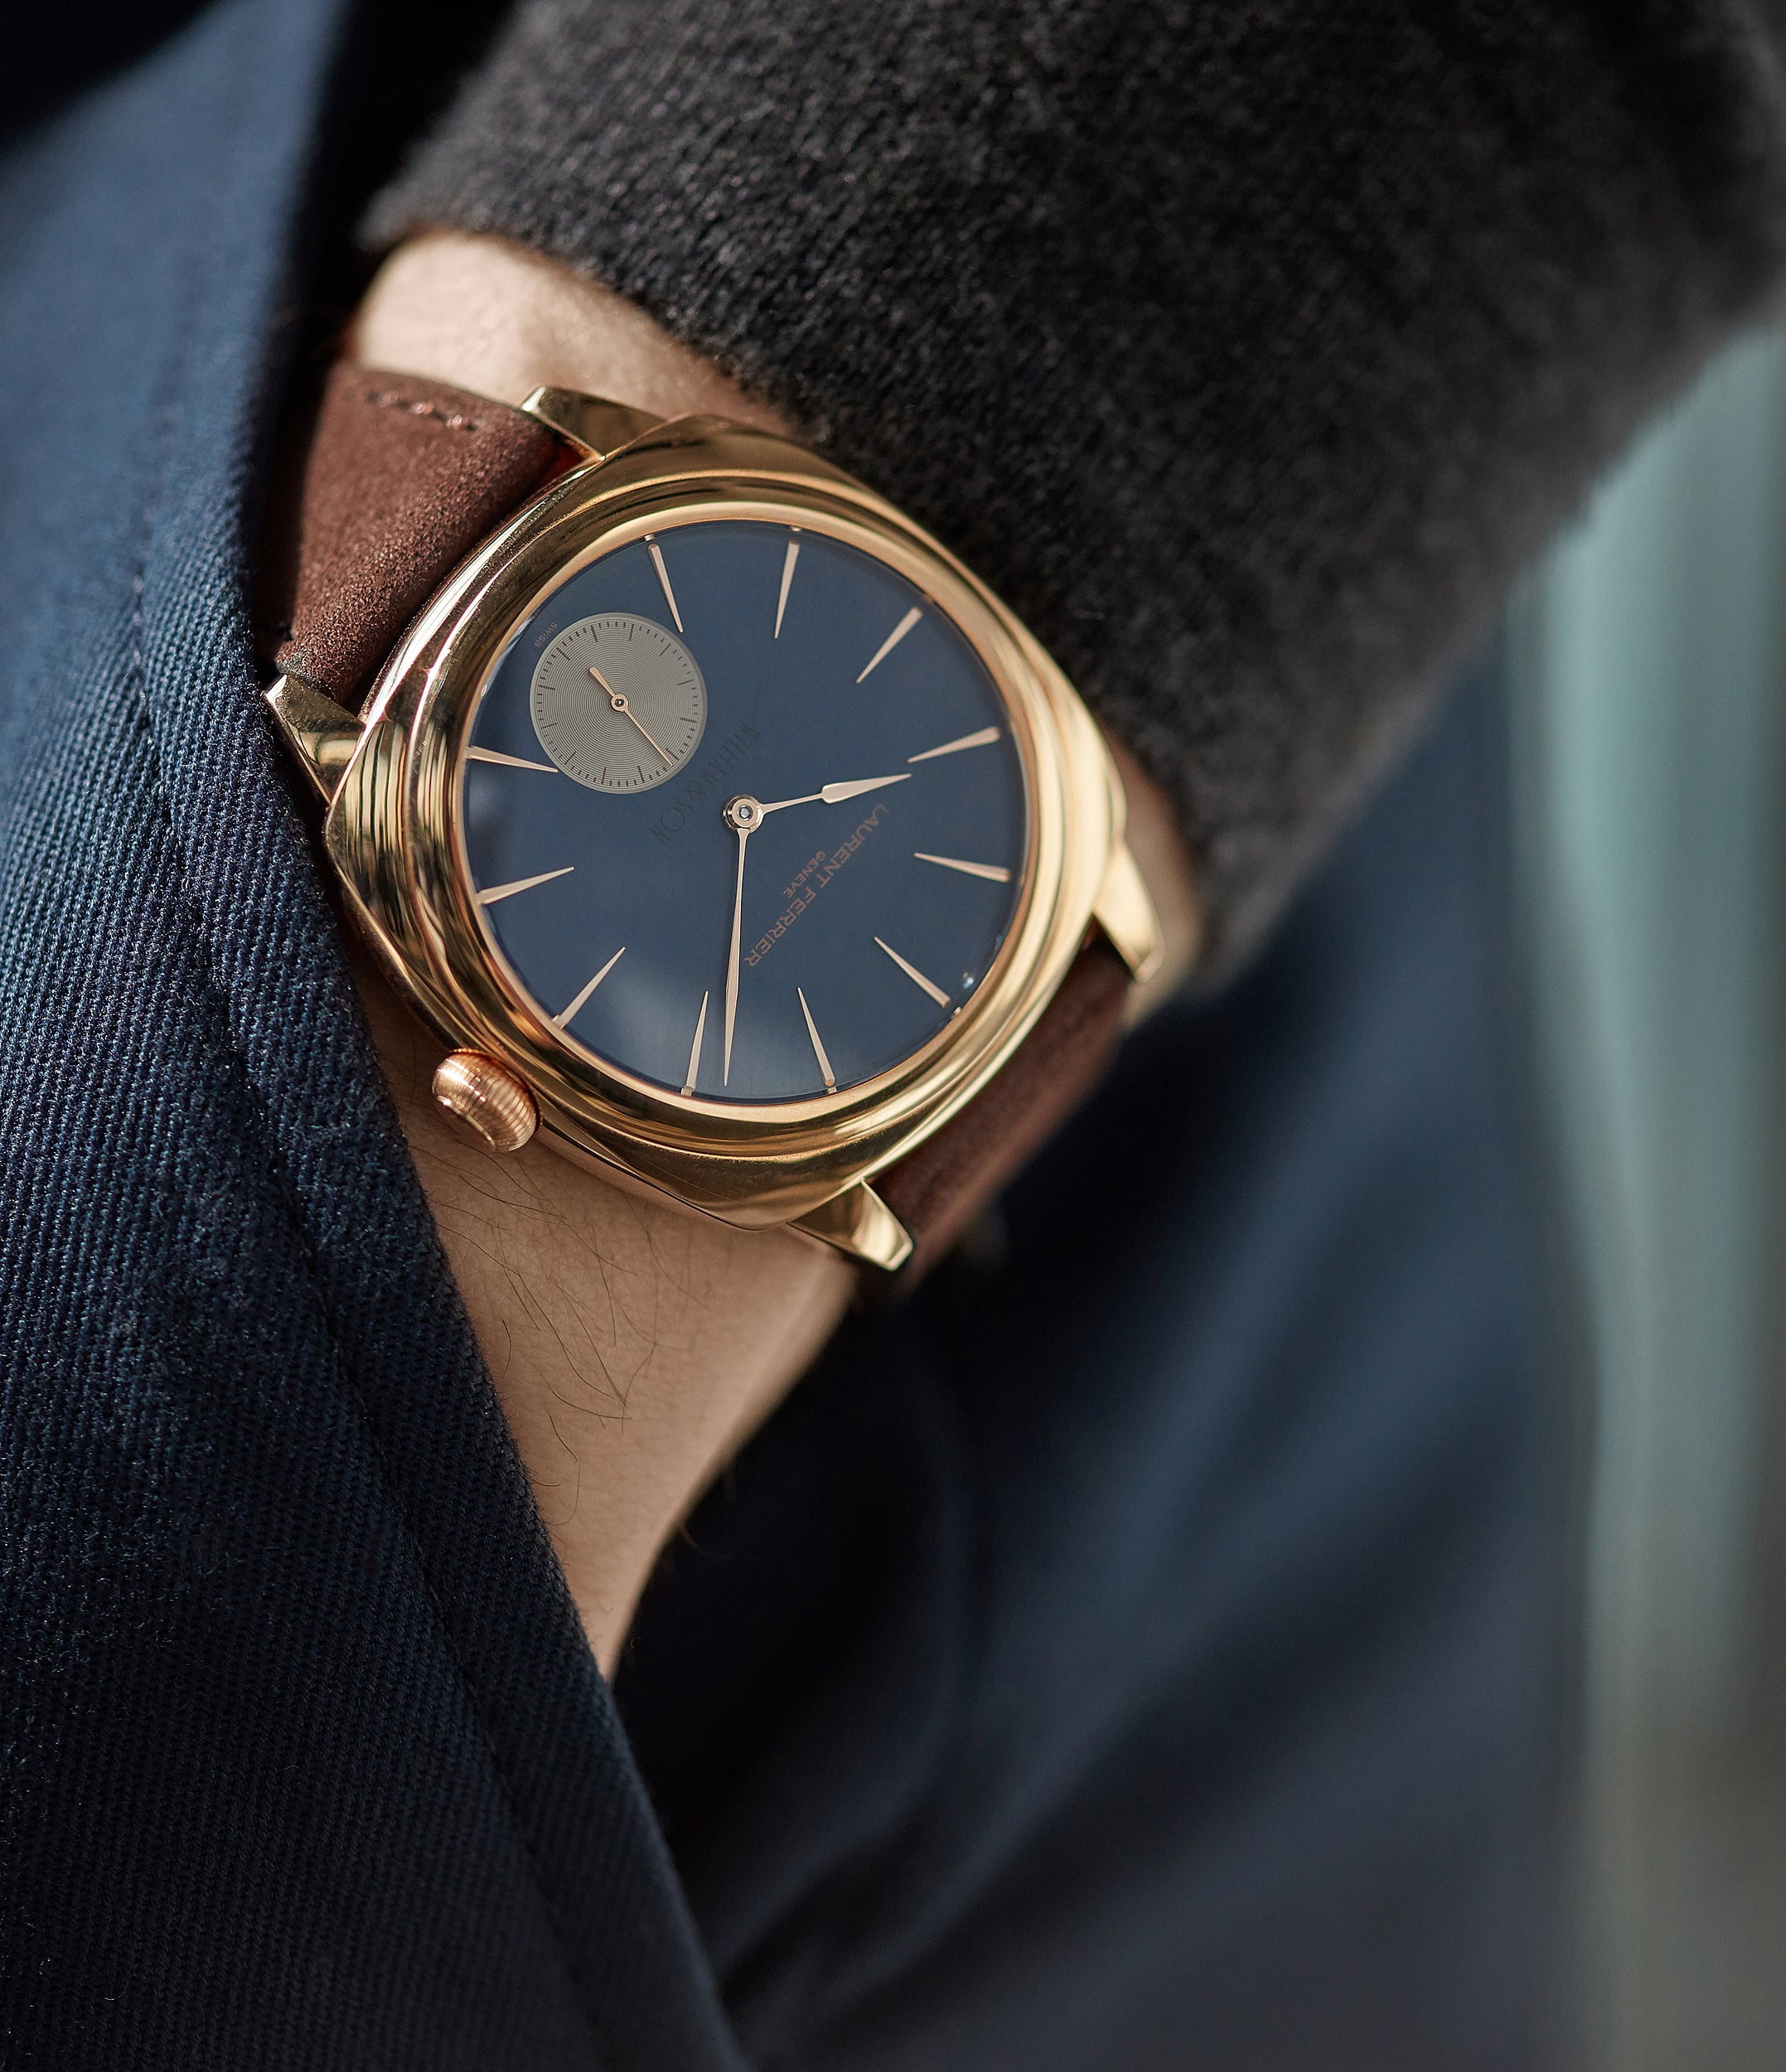 sell Laurent Ferrier Galet Square Micro-rotor blue dial by  William & Son rose gold rare luxury dress watch for sale online at A Collected Man London UK specialist and approved reseller of rare independent watchmakers